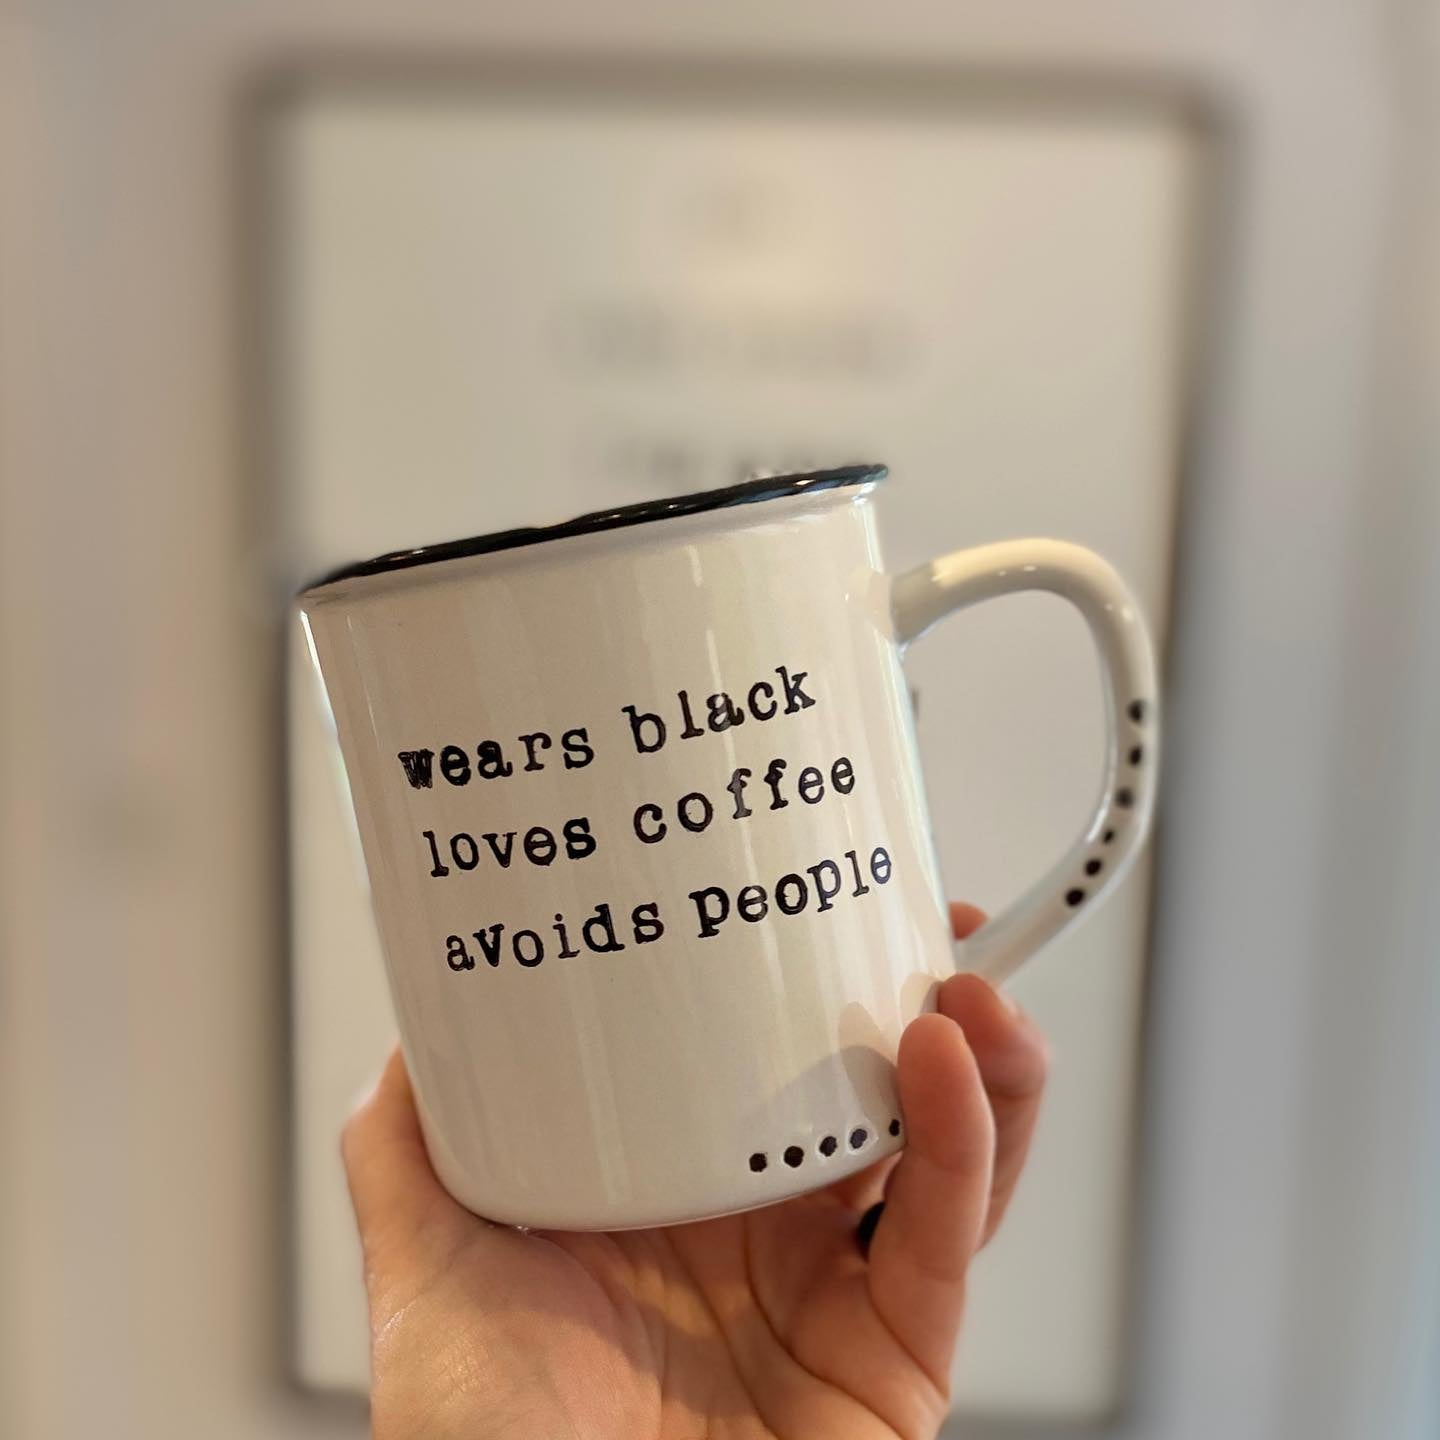 Wears black loves coffee avoids people